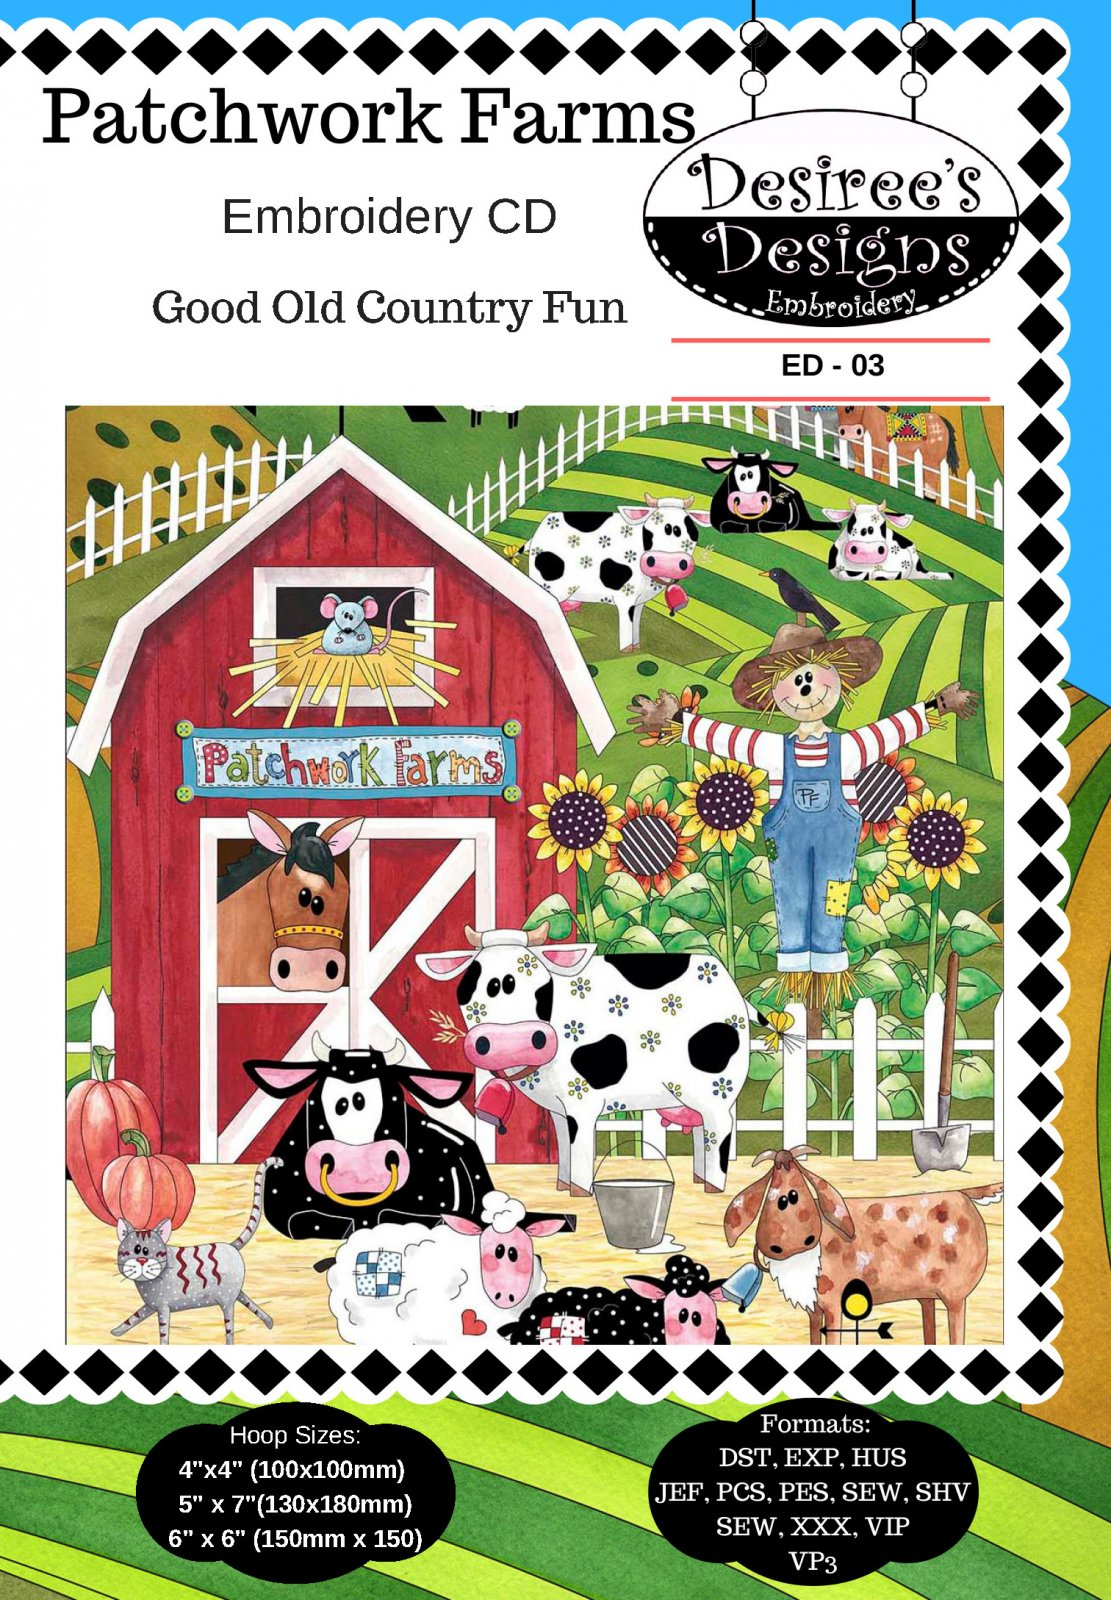 Patchwork Farms Embroidery CD (ED-03)